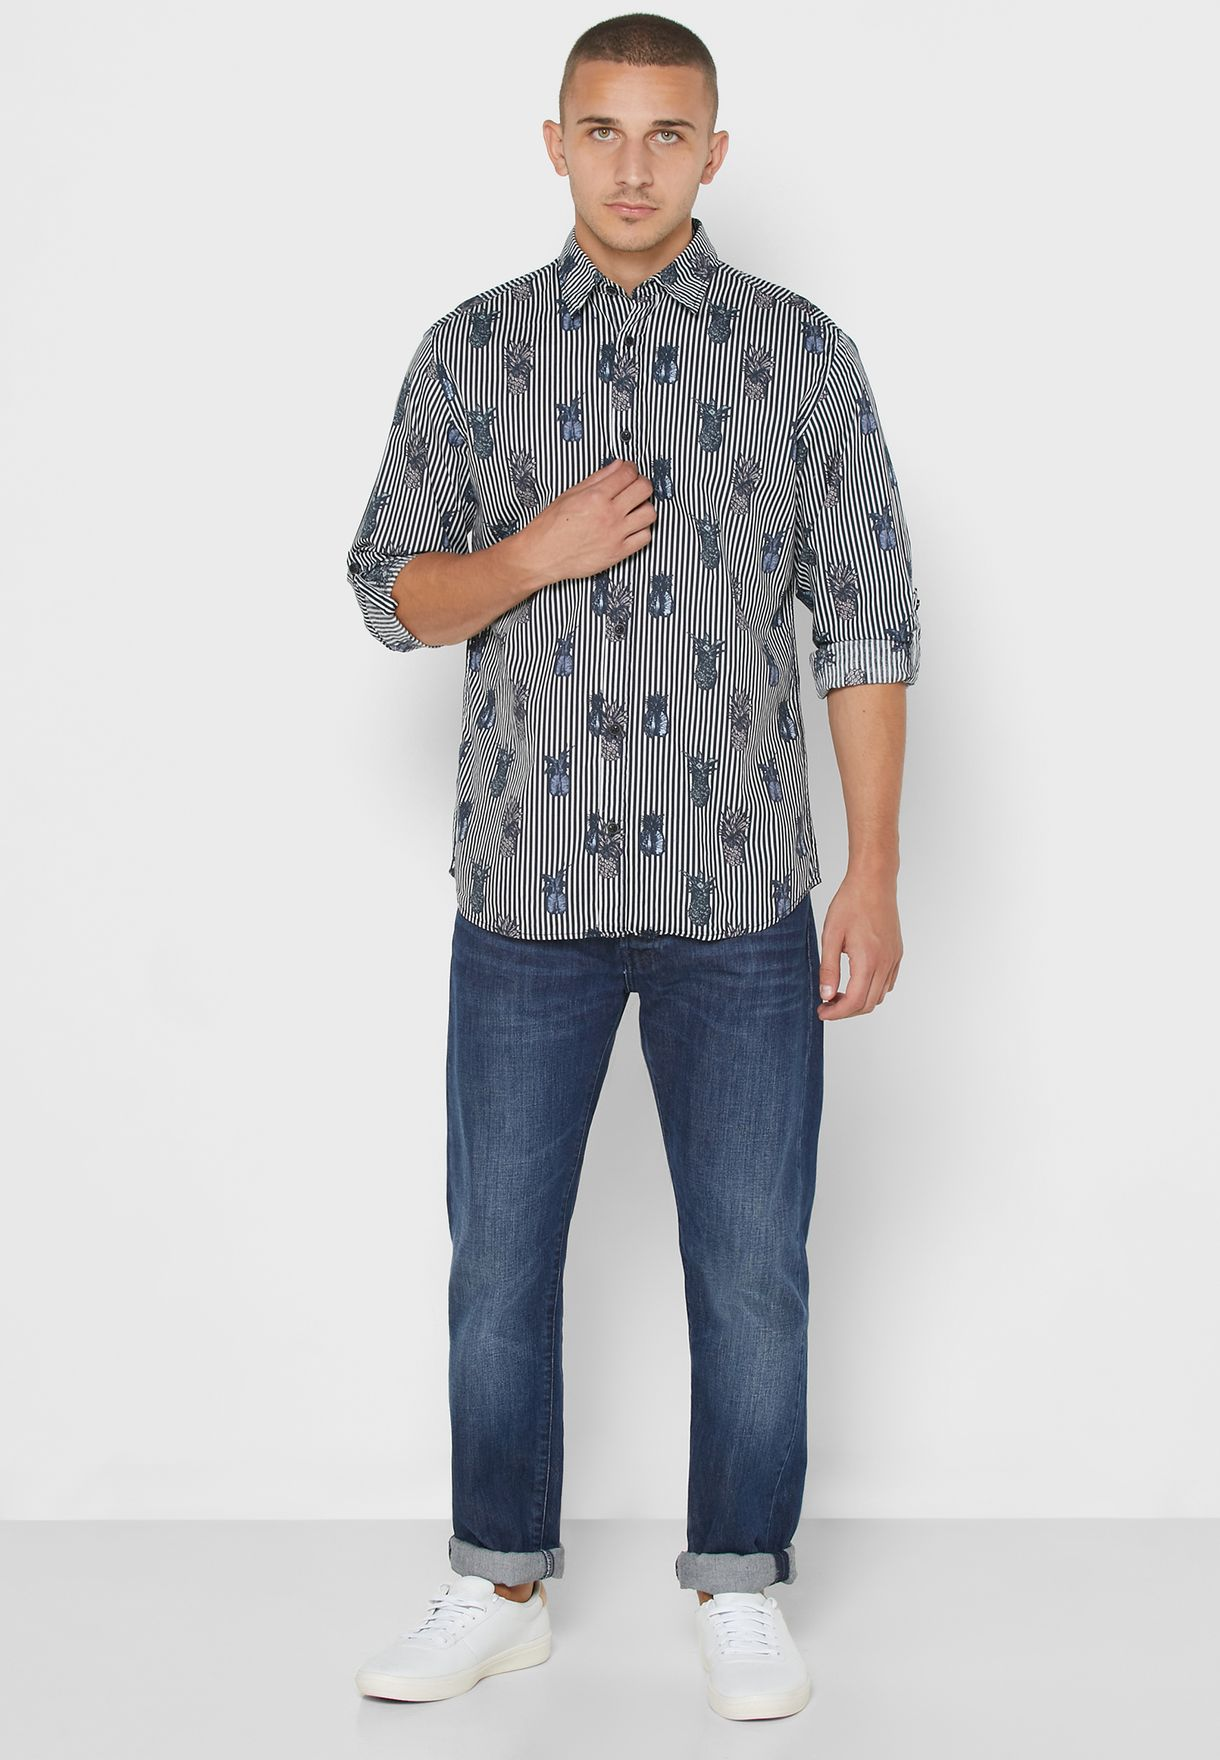 AOP Regular Fit Shirt